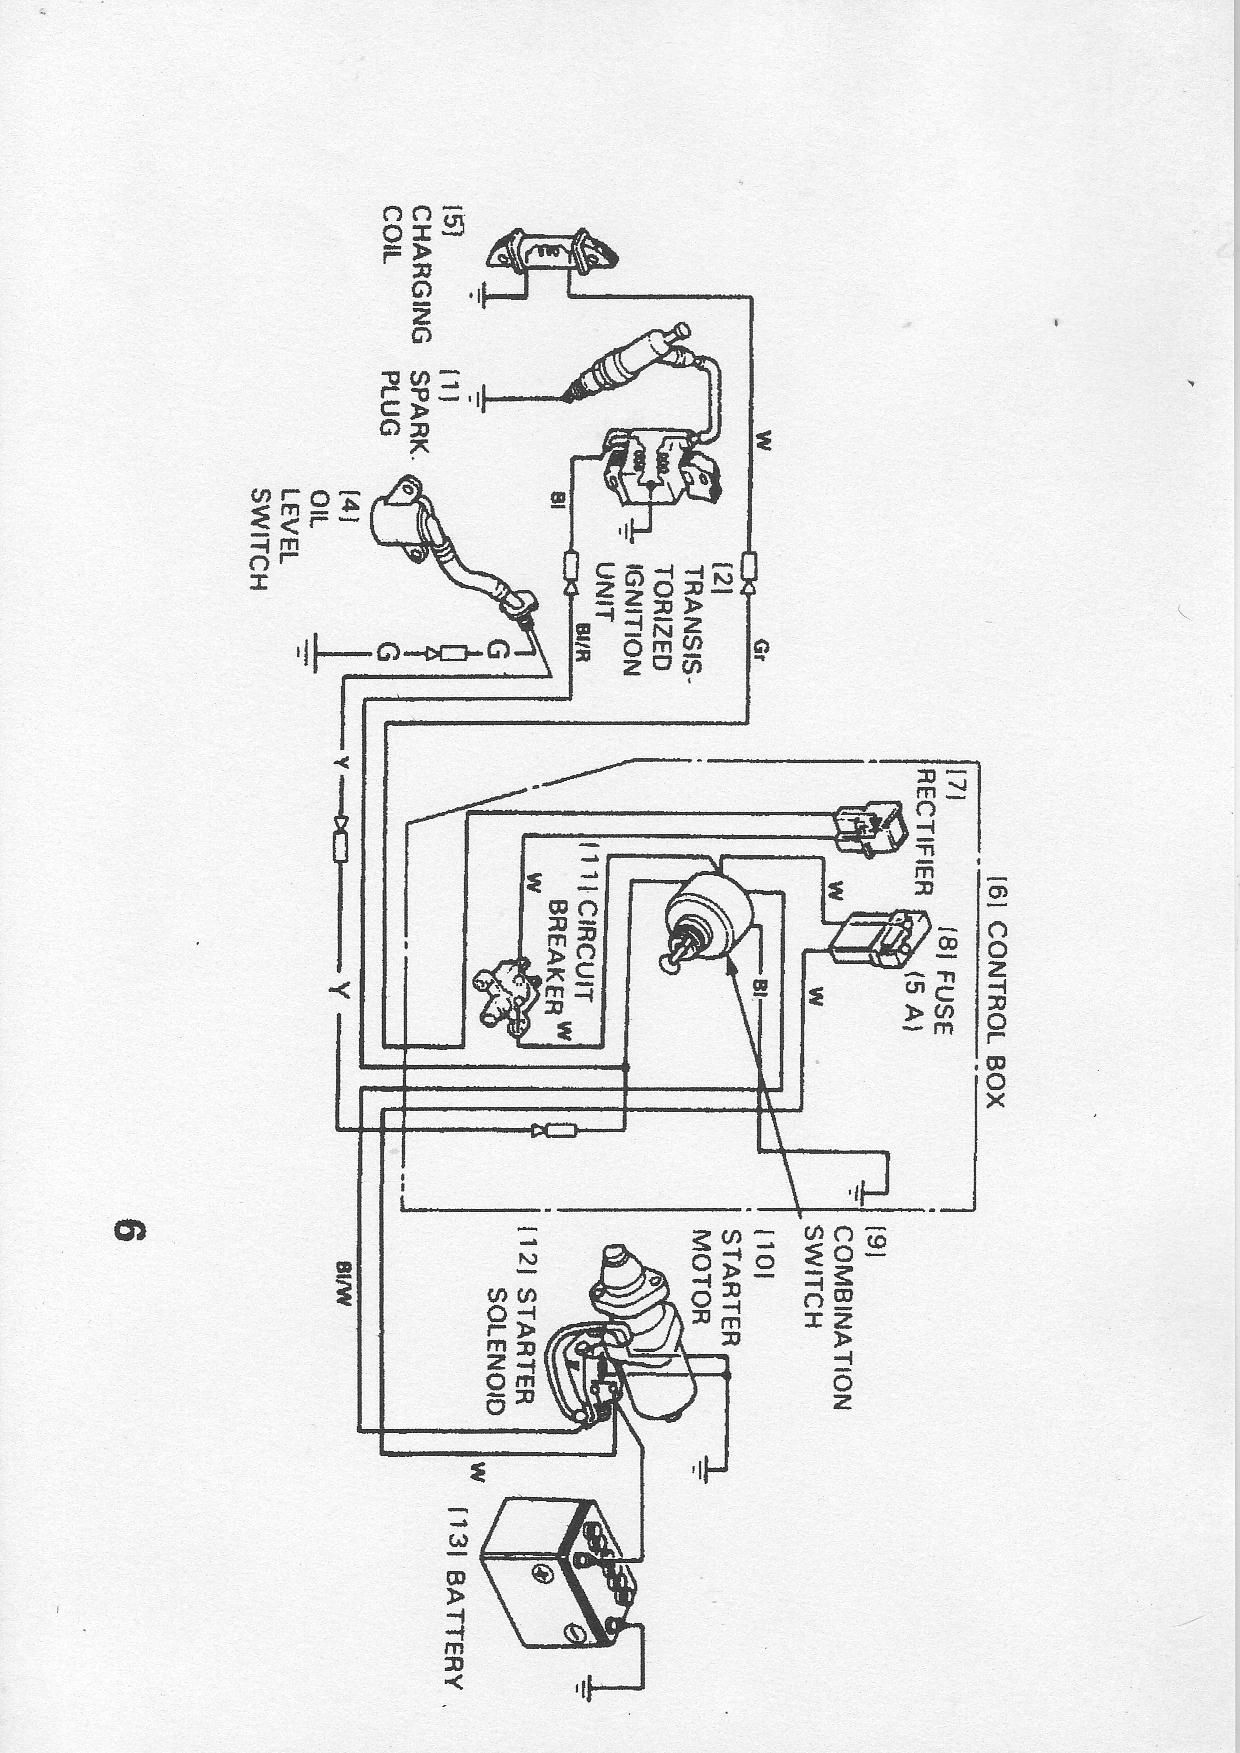 qlink 250cc engine diagram